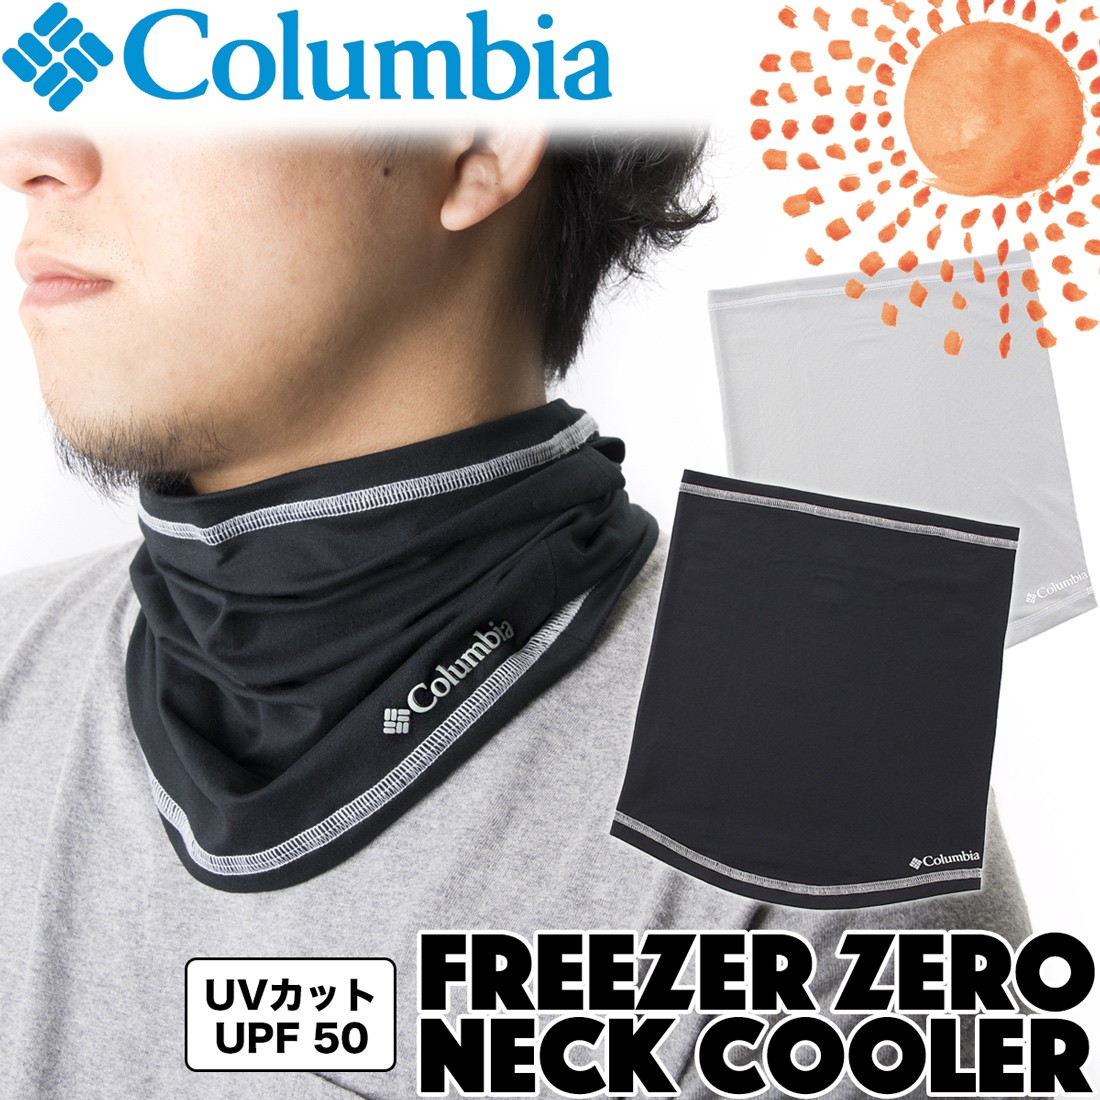 Columbia Freezer Zero Neck Cooler